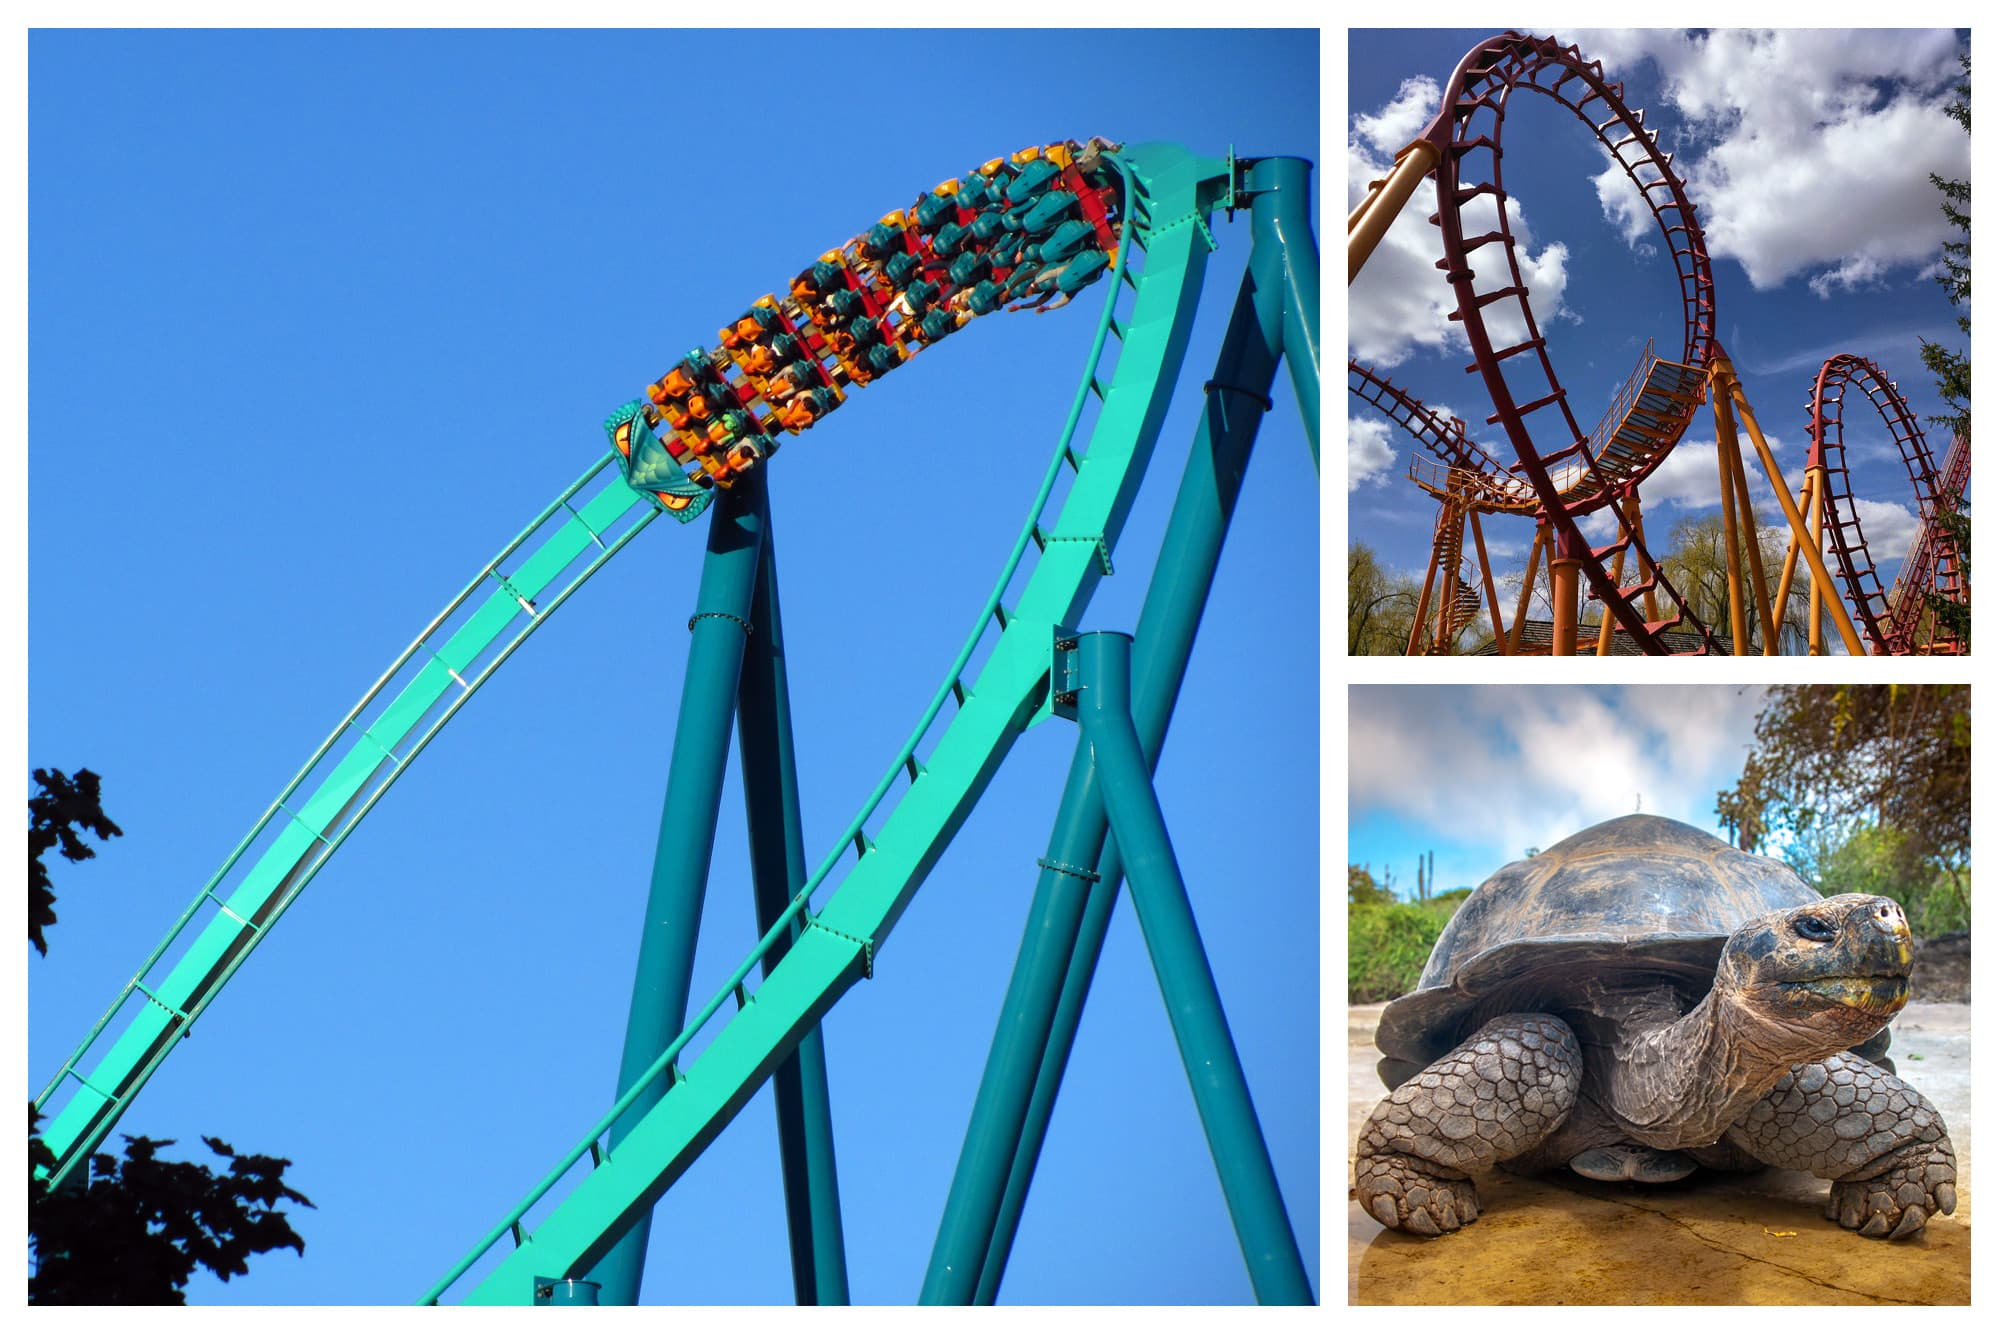 Roller coasters and a giant tortoise in Vaughan, Ontario